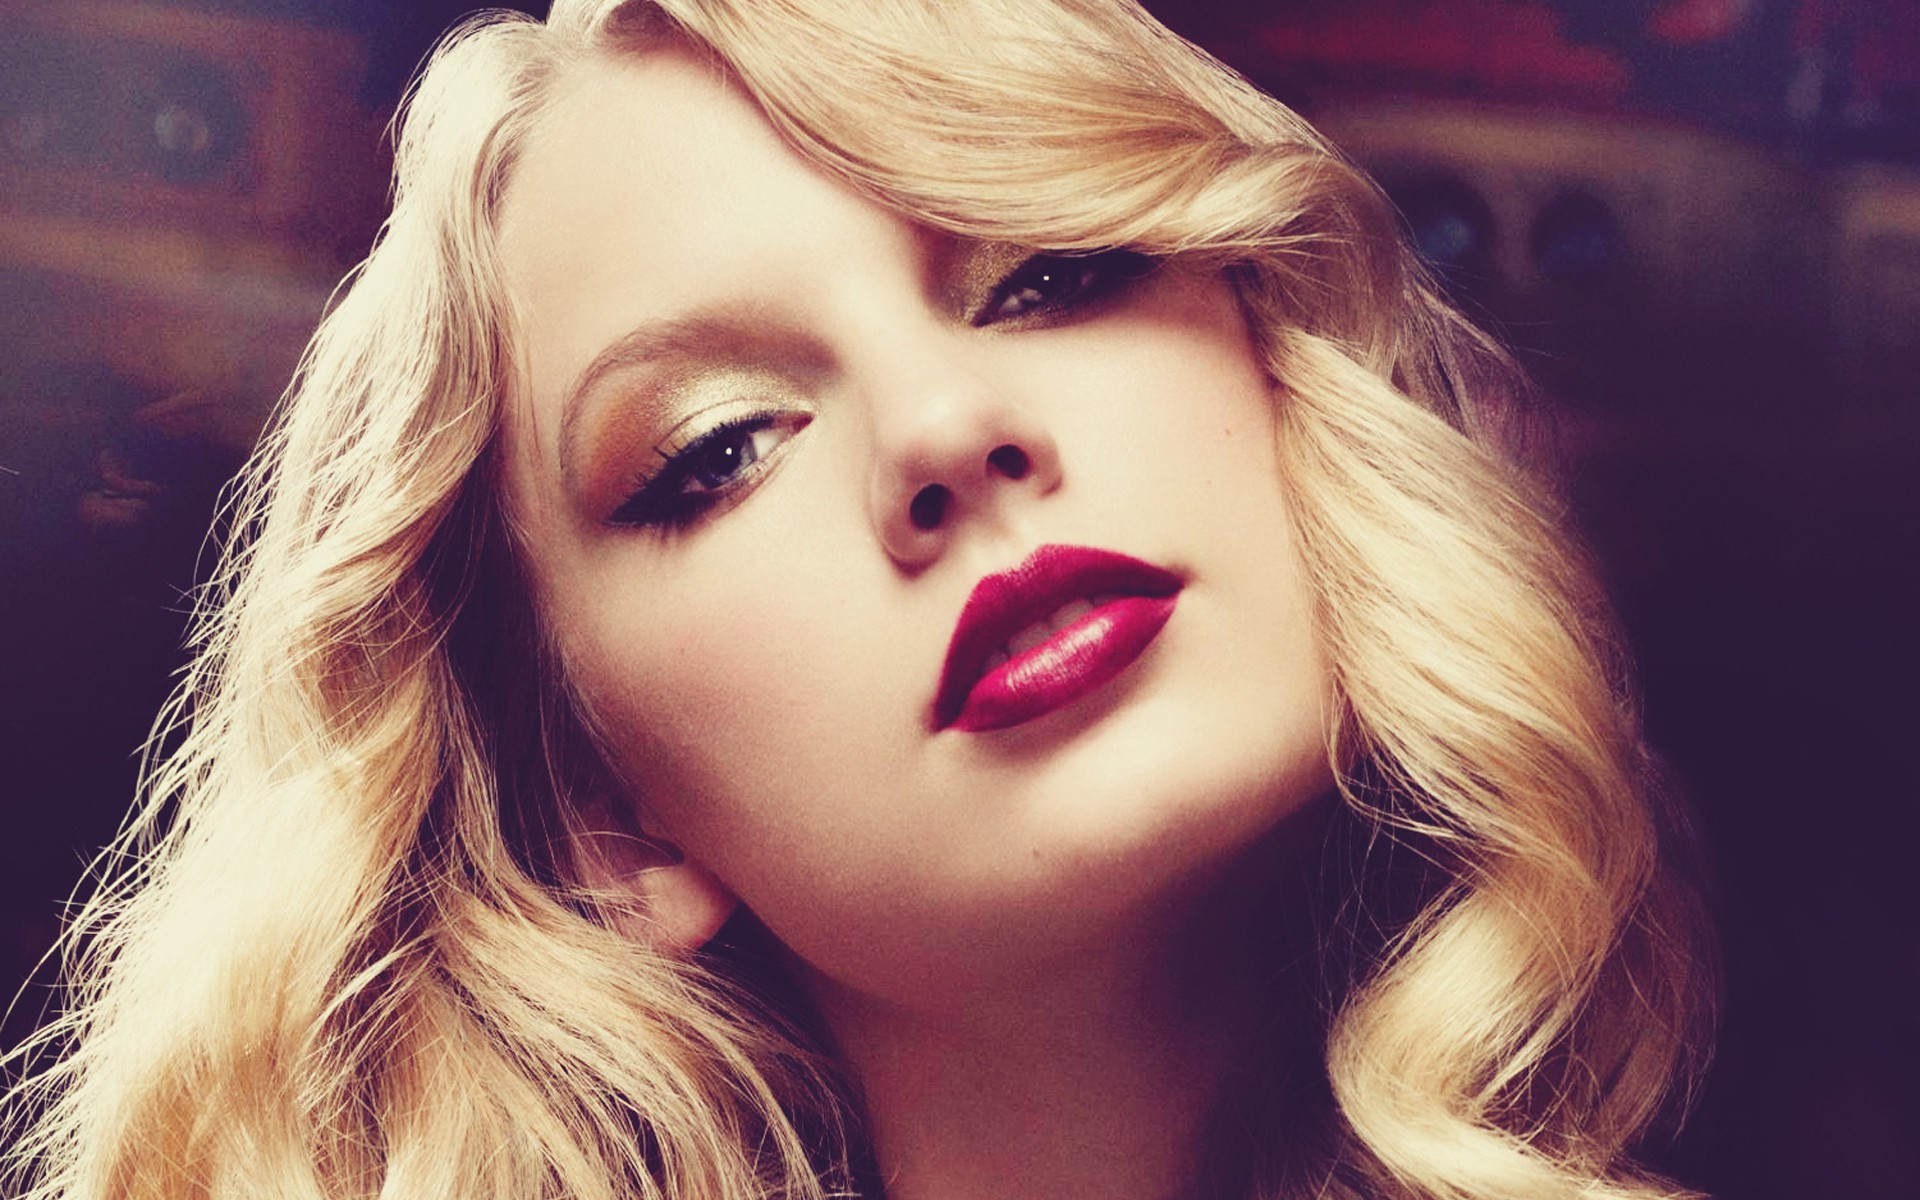 Top 30 Taylor Swift HD Wallpapers 2017 Images And 1920x1200